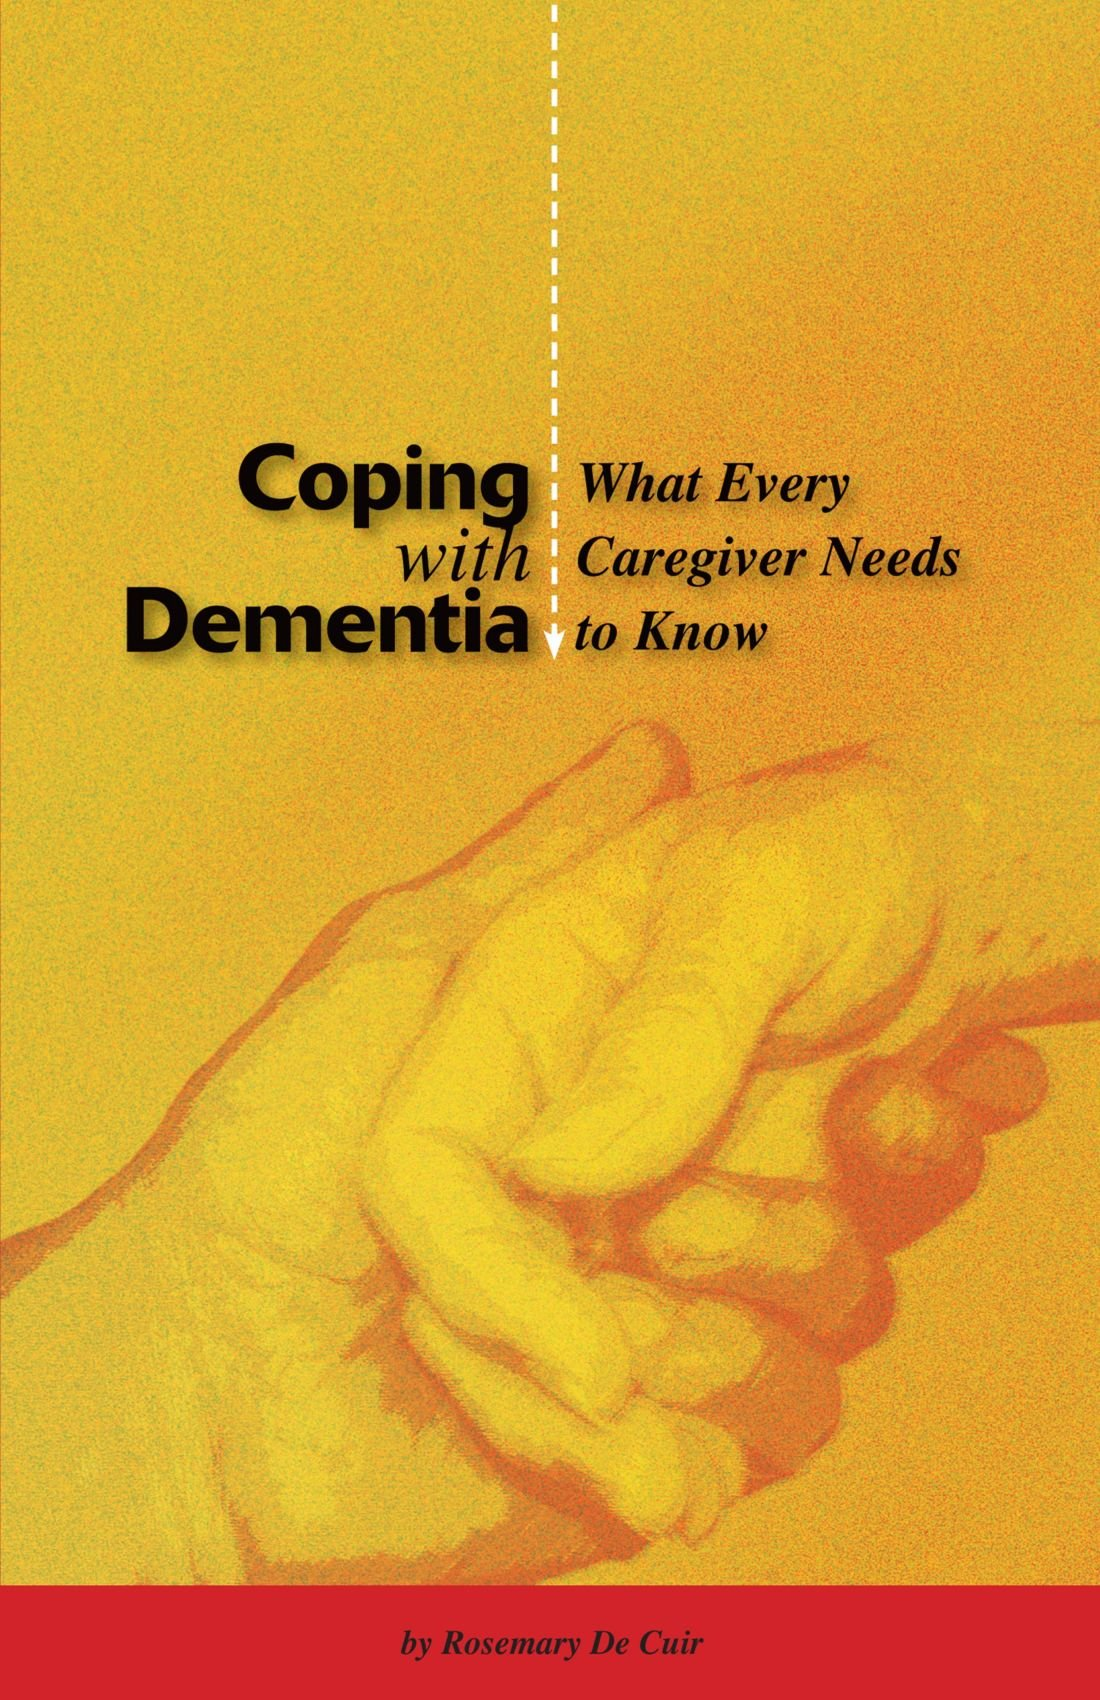 Read Online Coping With Dementia: What Every Caregiver Needs To Know PDF